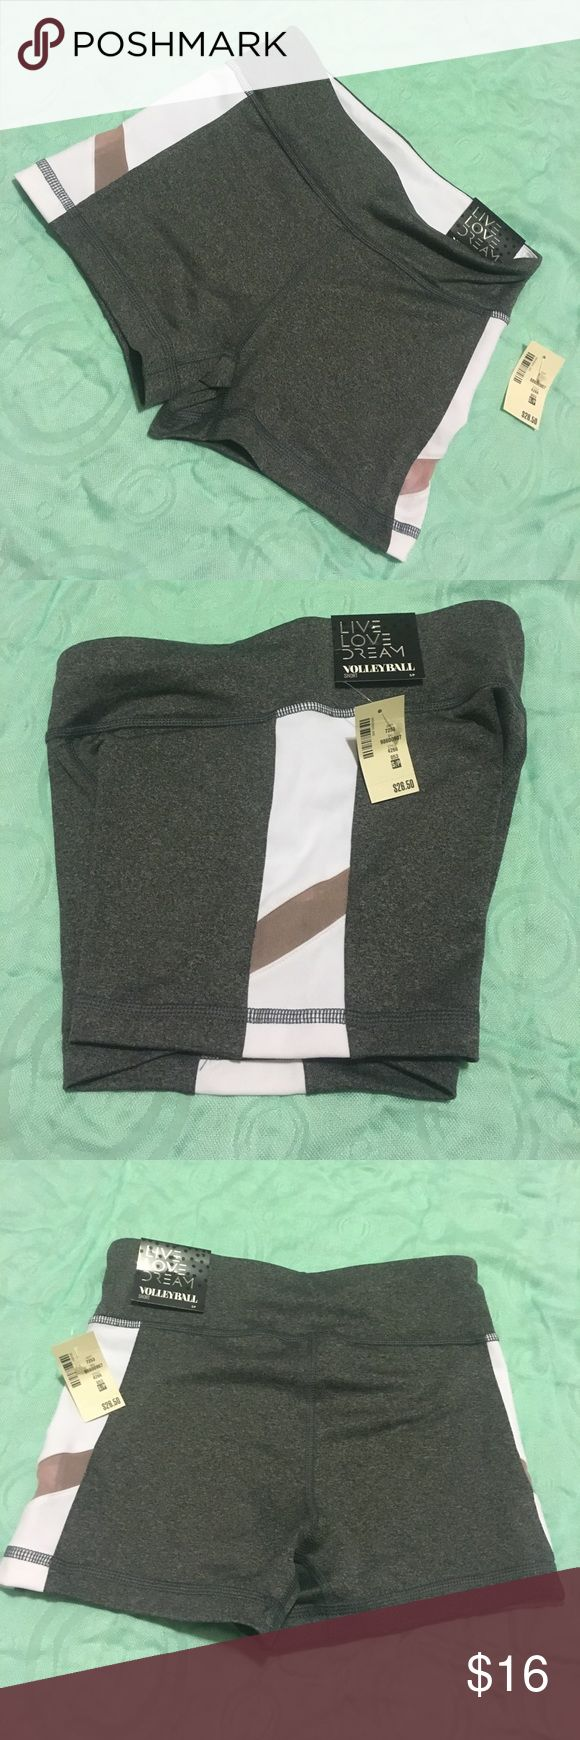 "NWT Live Love Dream ""Volleyball Shorts"" Adorable grey volleyball shorts with white accent strip and maroon mesh peek-a-boo! New with tags! Aeropostale Shorts"